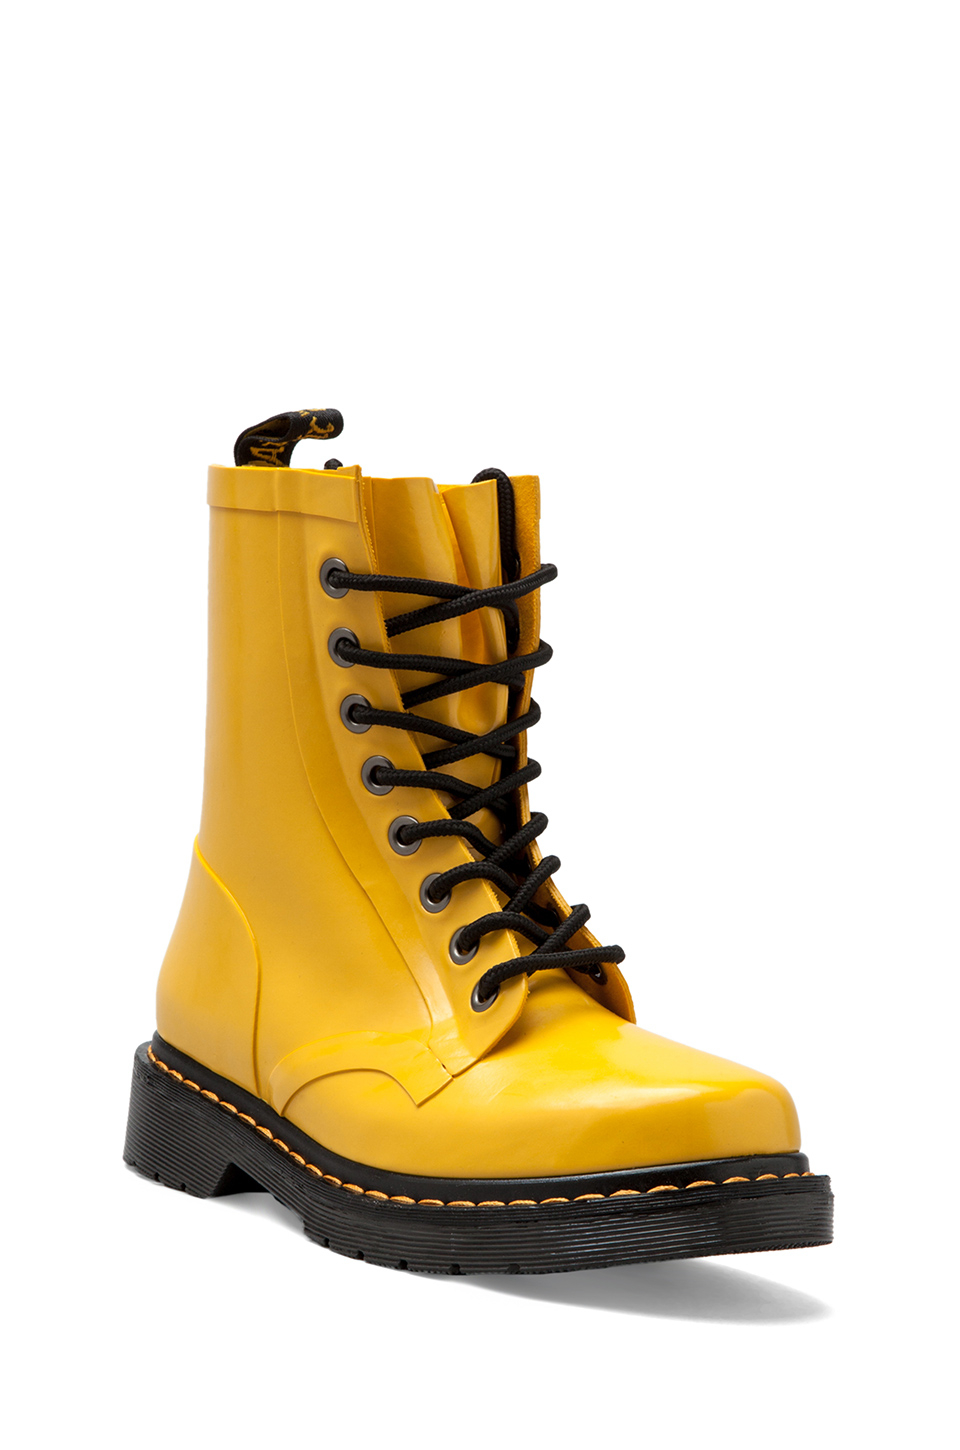 Lyst Dr Martens Drench 8eye Rain Boot In Yellow In Yellow